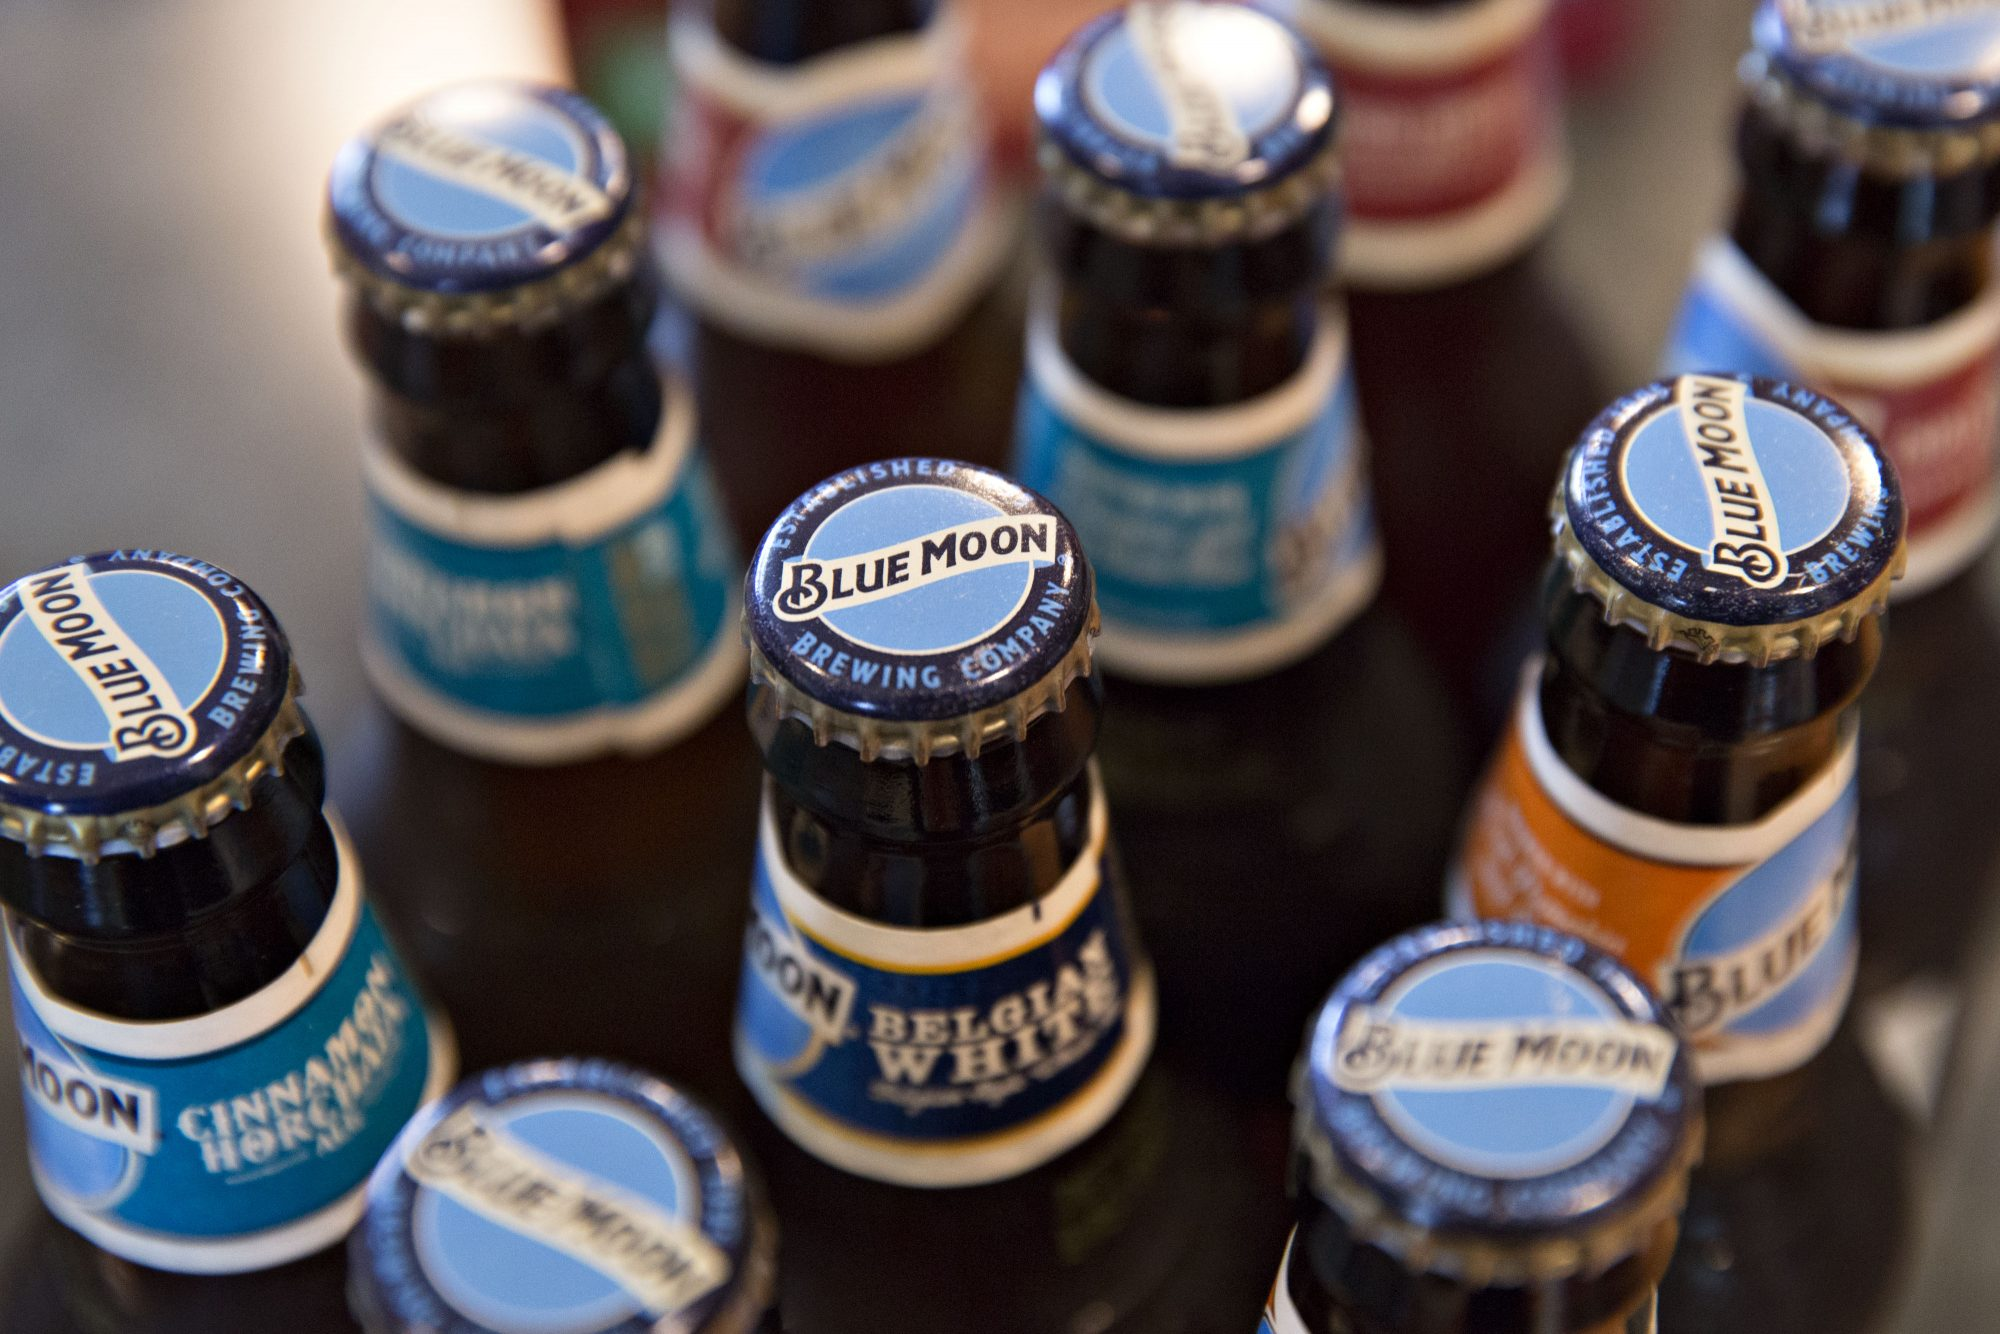 MillerCoors Brand Beverages Ahead Of Molson Coors Brewing Co. Earnings Figures